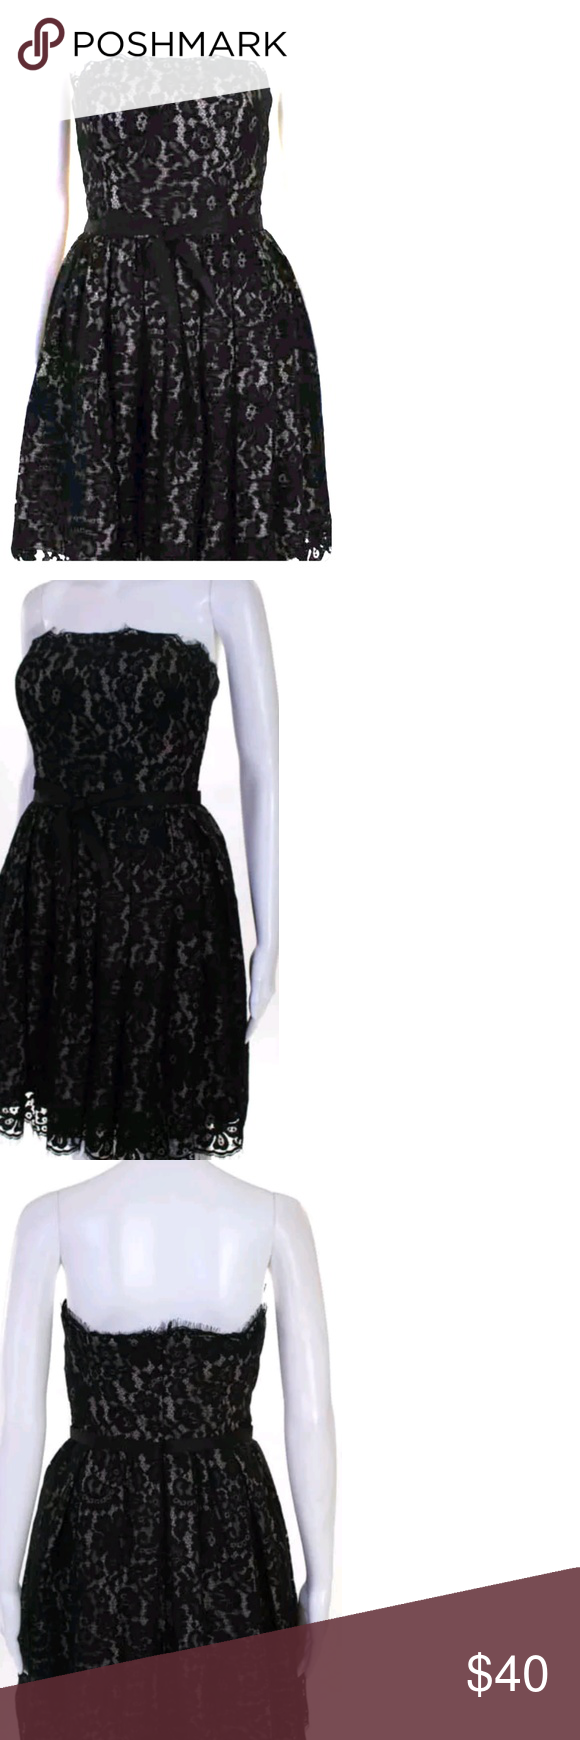 Robert Rodriguez Cocktail Dress Brand New With Tags Robert Rodriguez Neiman Marcus For Target Black A Dress Brands Lace Party Dresses Robert Rodriguez Dress [ 1740 x 580 Pixel ]